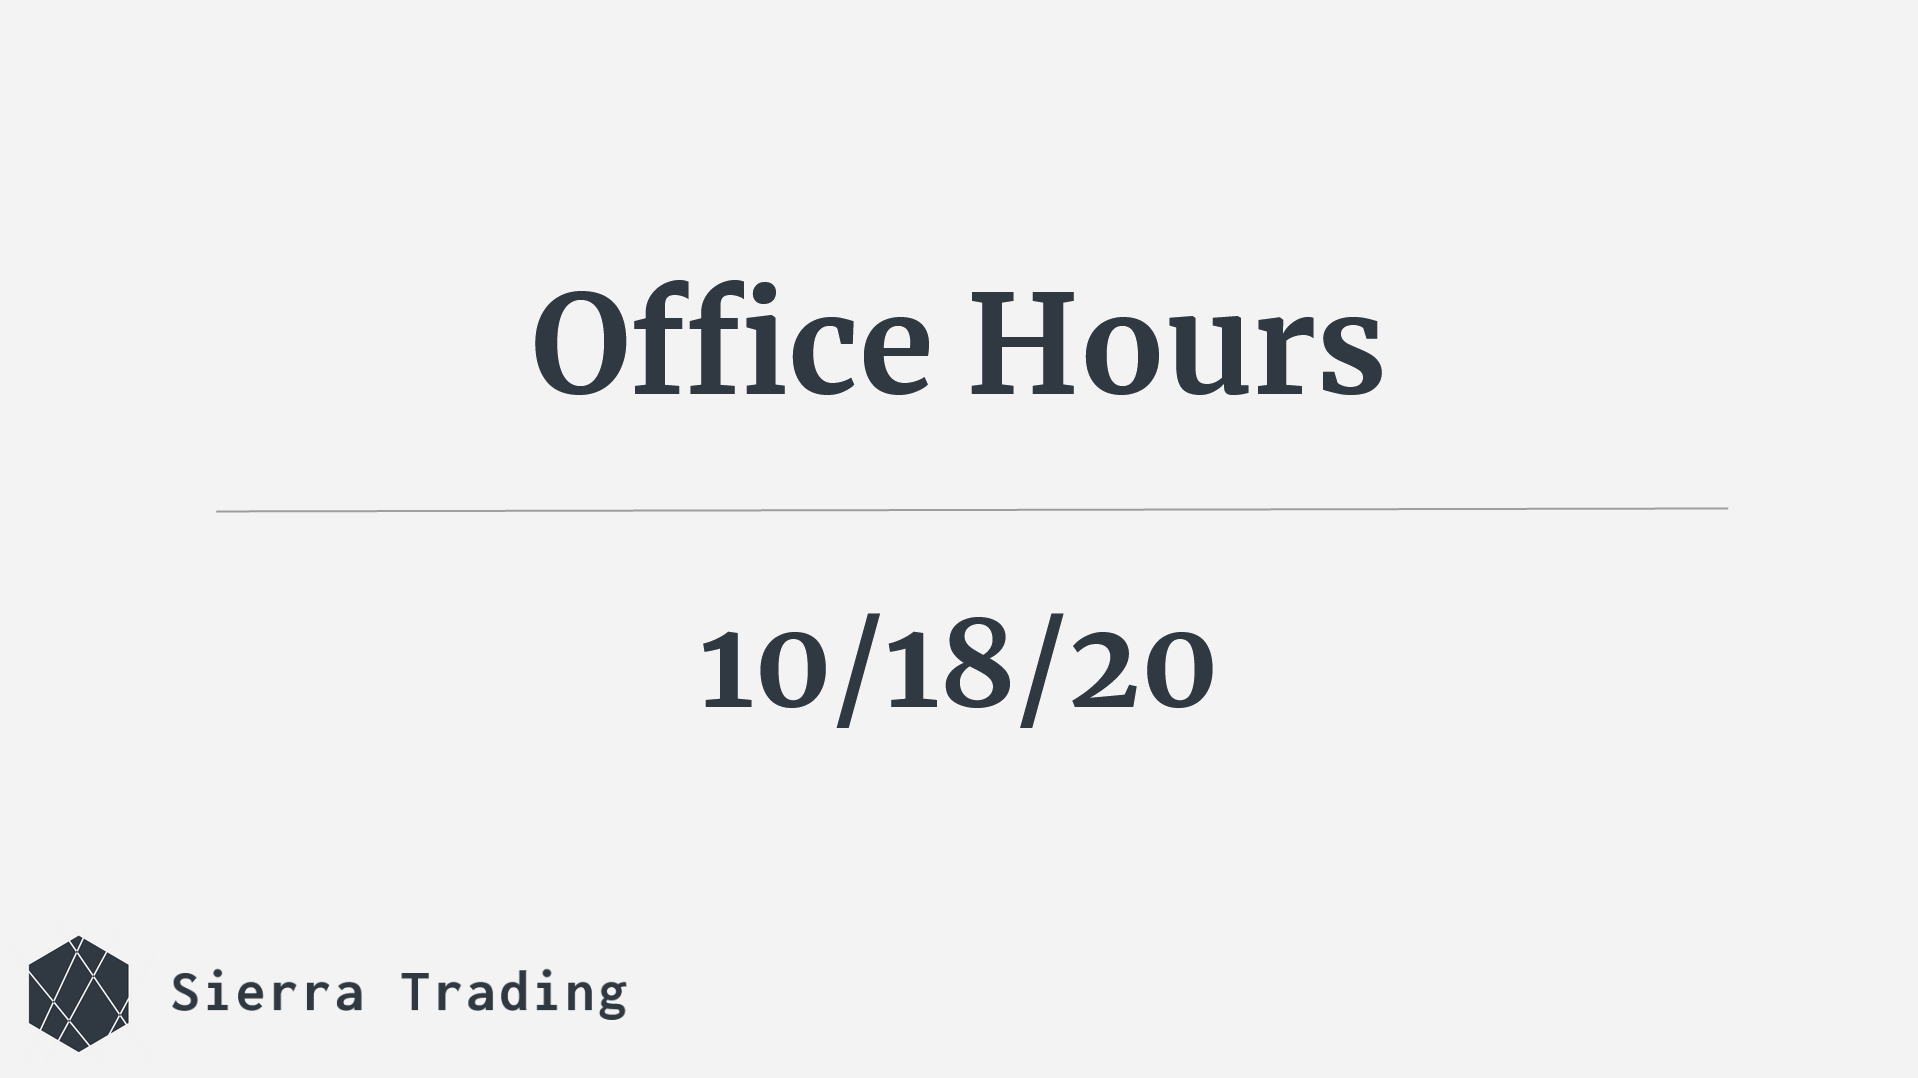 Office Hours - 10/18/20